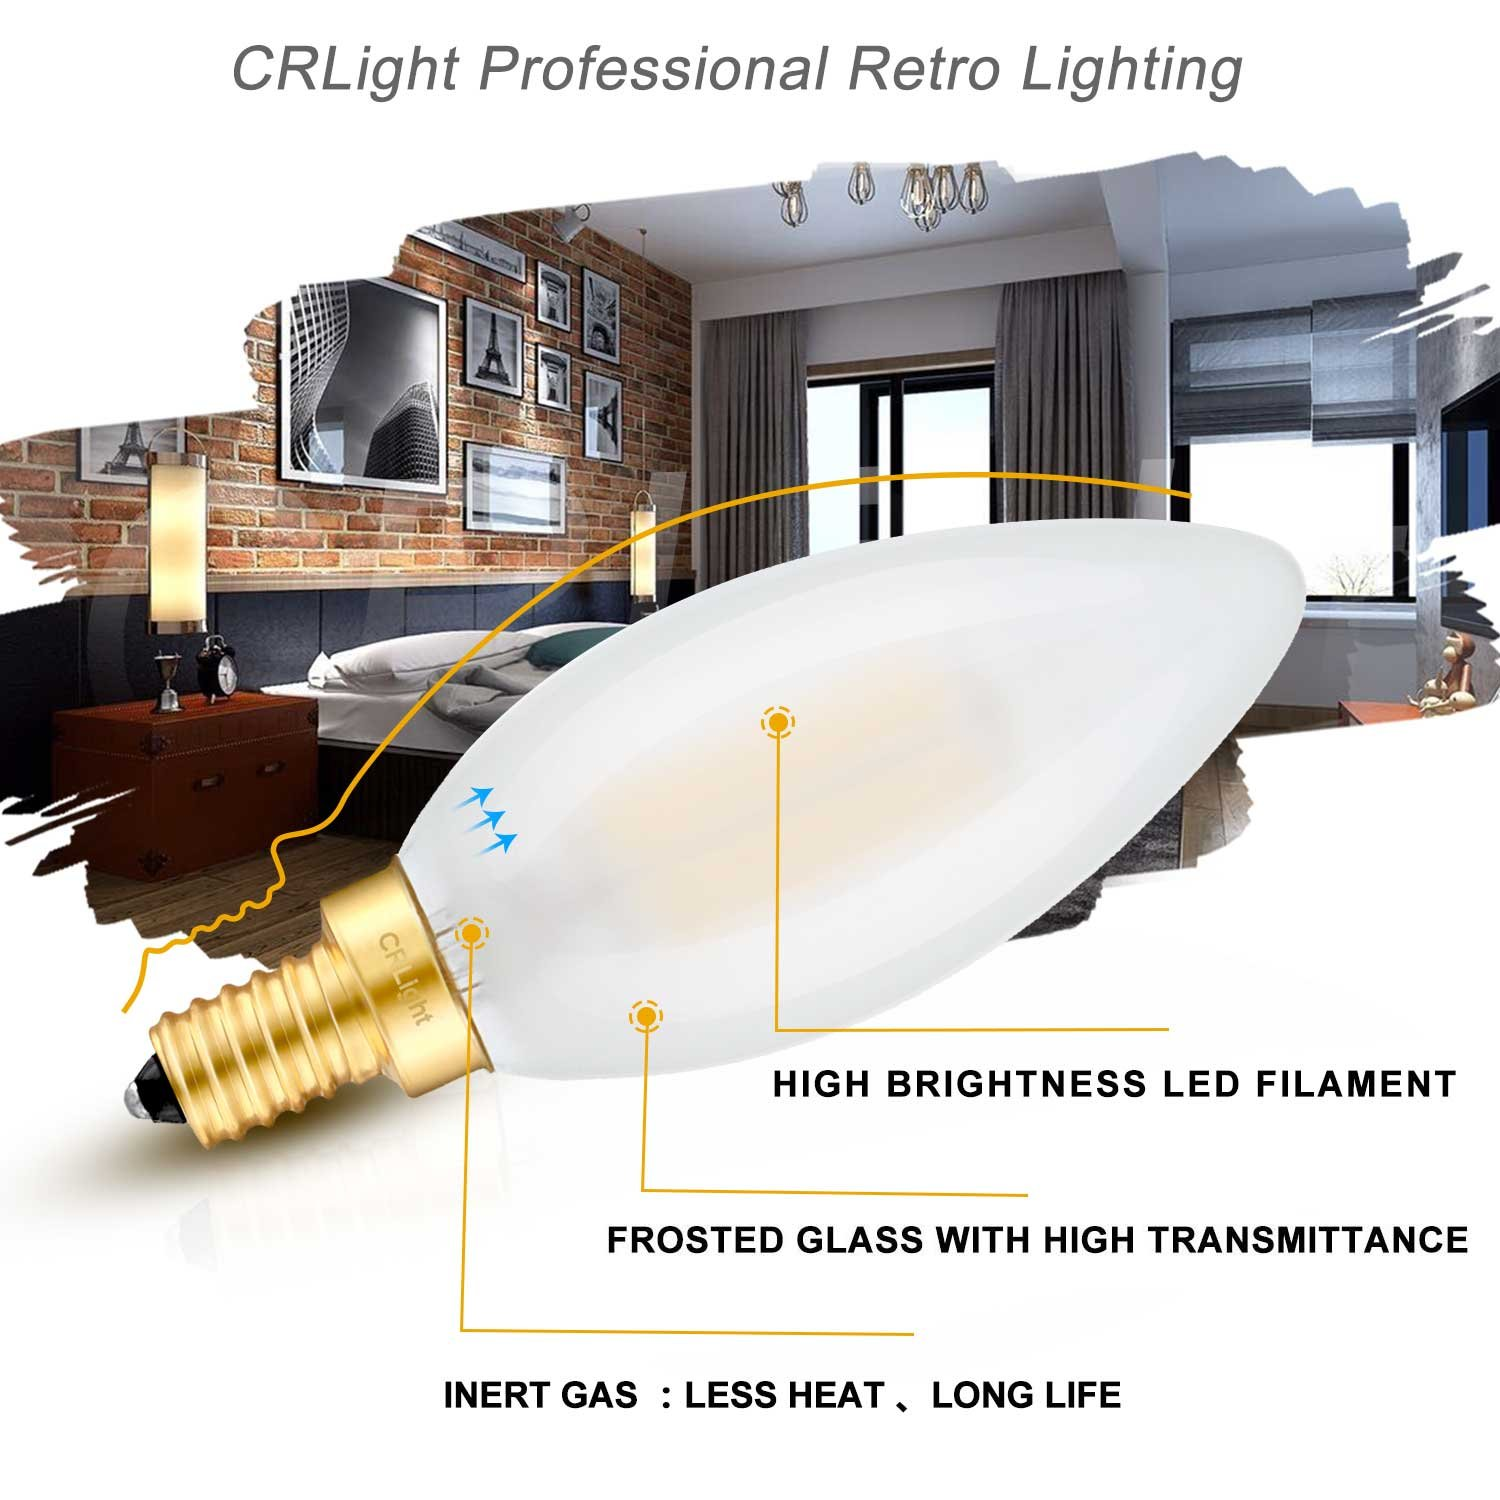 6 Pack B11 Clear Glass Torpedo Shape Bullet Top CRLight 6W 700LM Dimmable LED Candelabra Bulb 2700K Warm White 360 Degrees Beam Angle 60W Incandescent Equivalent E12 Base Filament LED Candle Bulbs